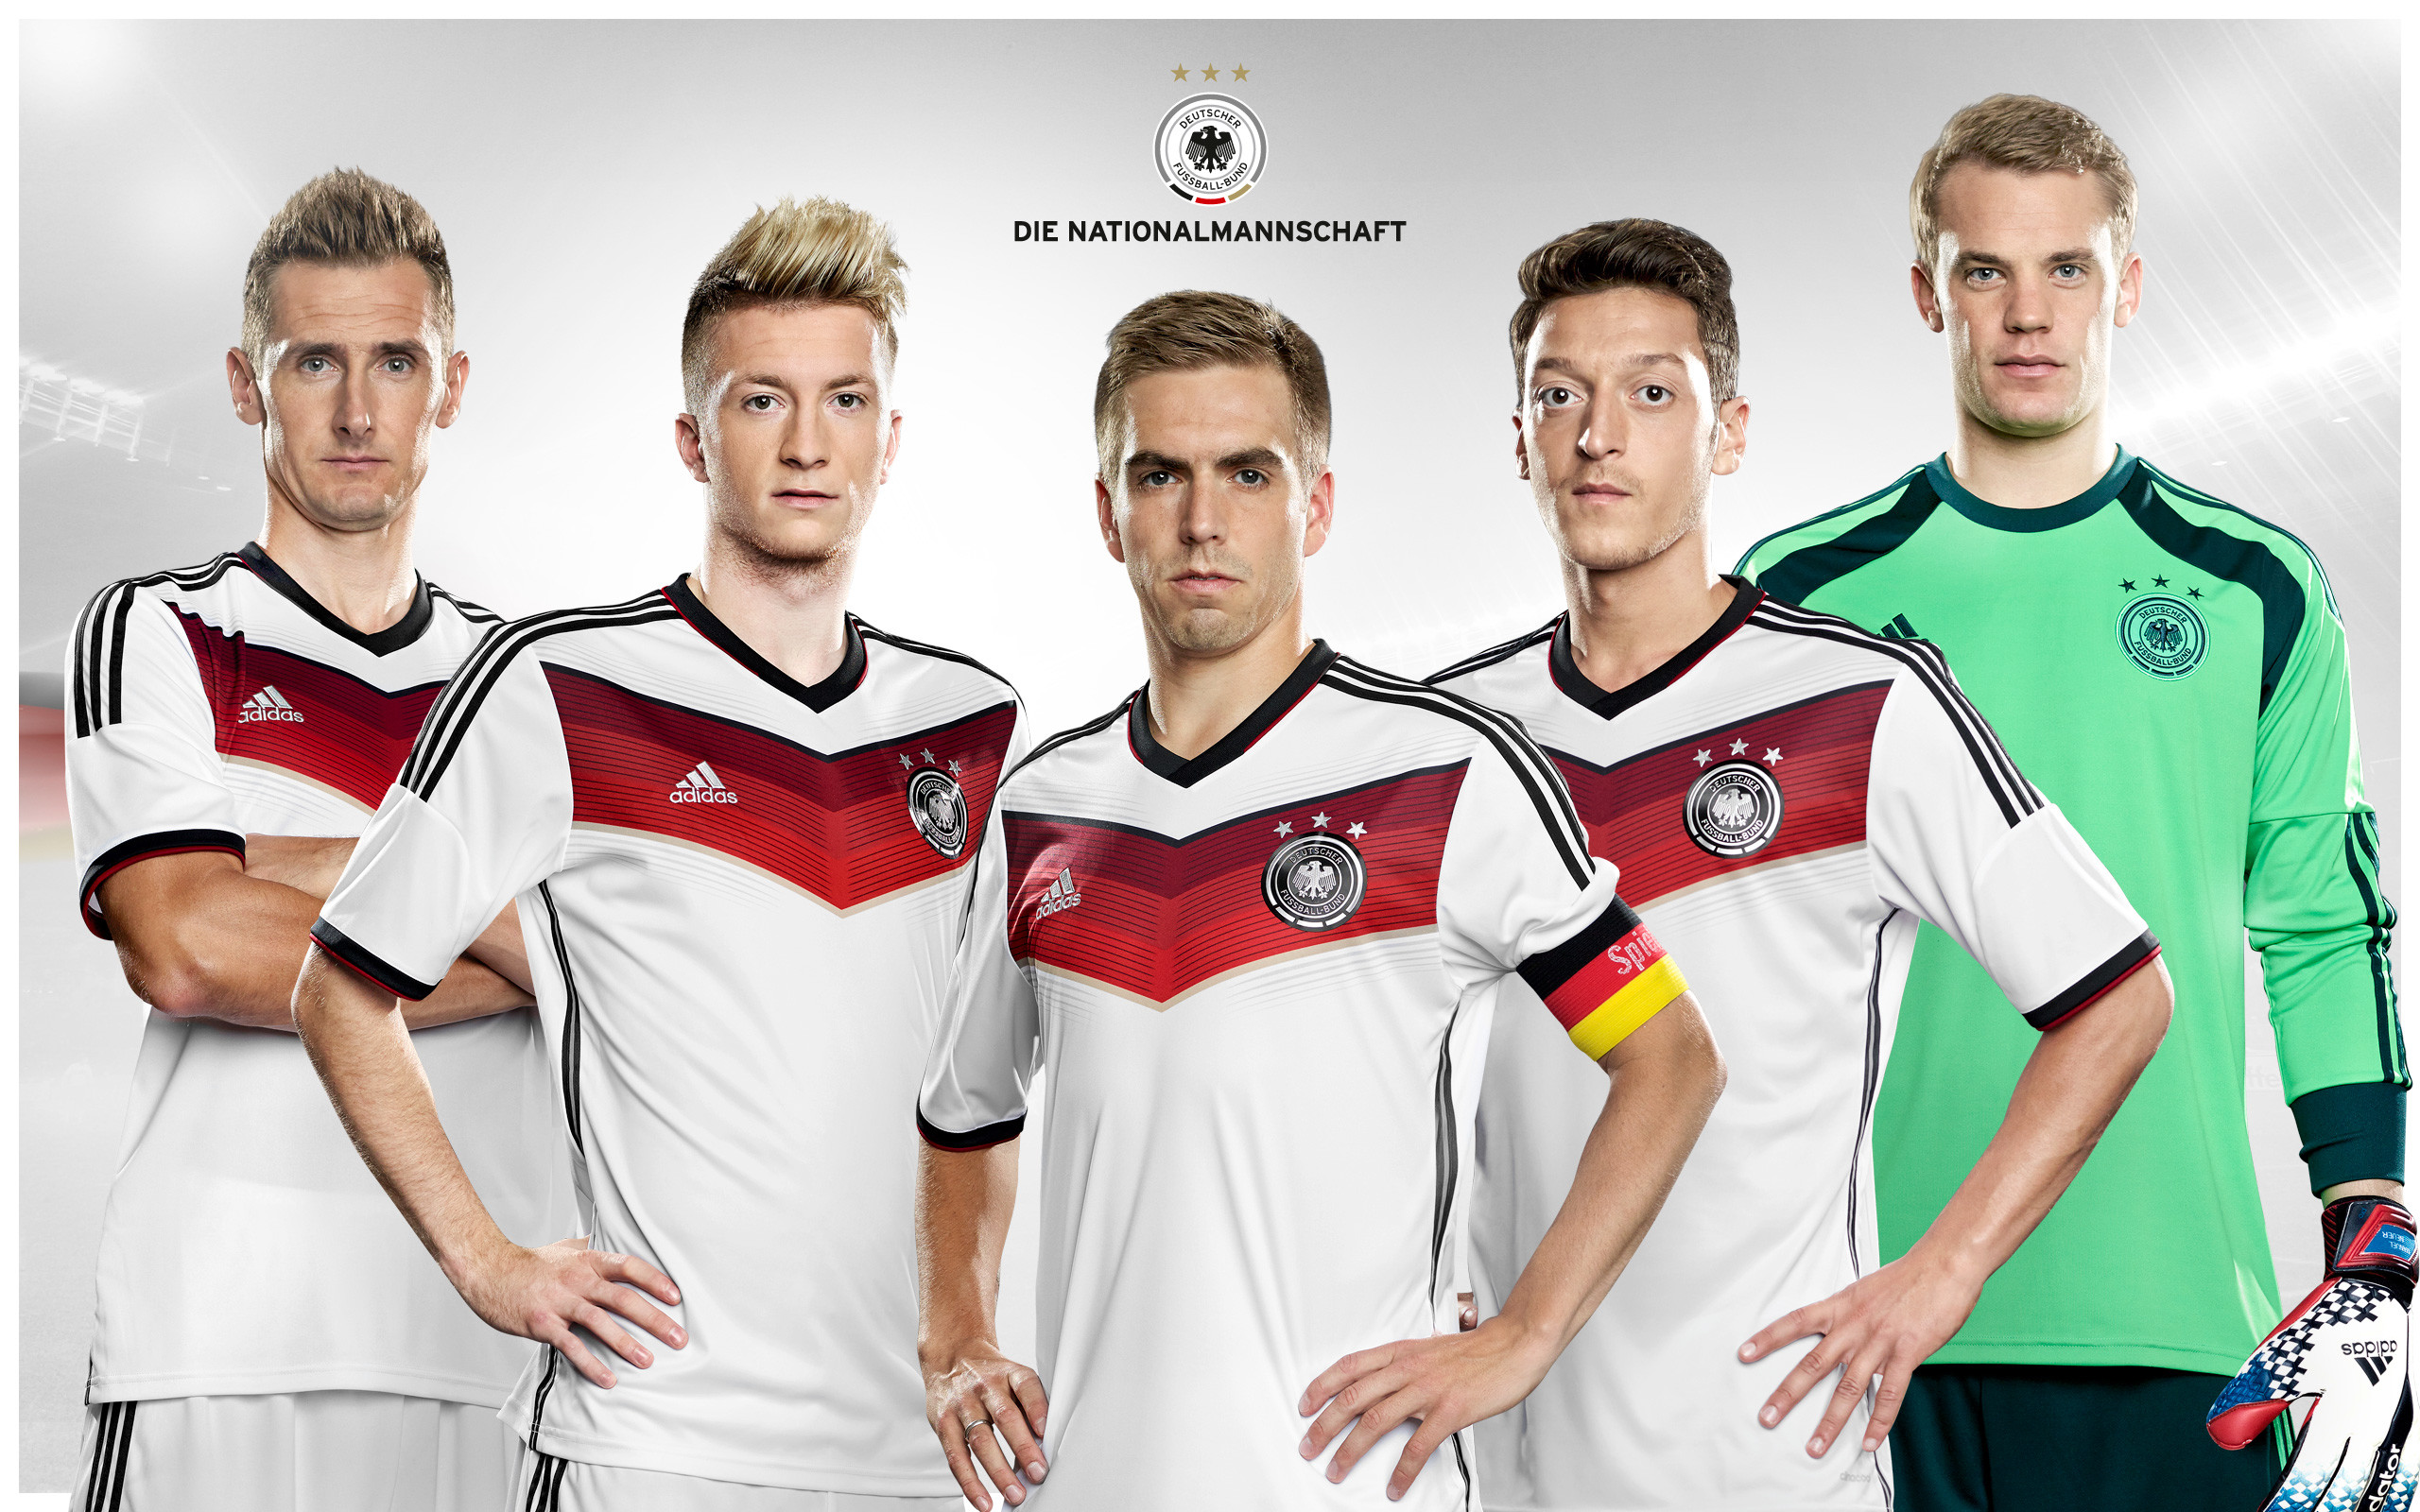 2560x1600 Germany National Football Team images Die Mannschaft HD wallpaper and  background photos